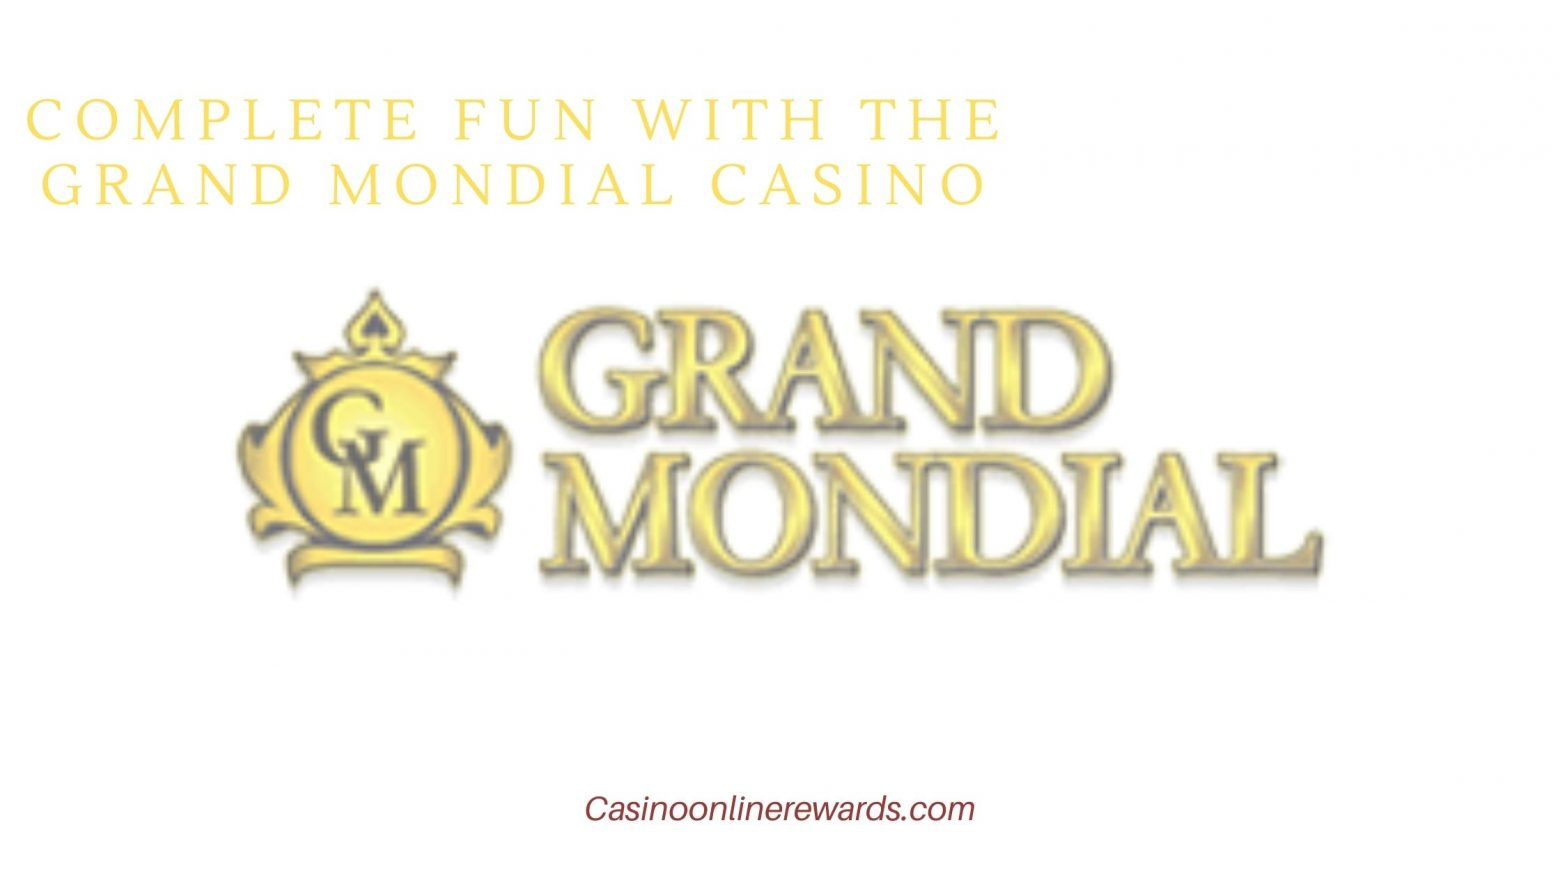 Complete Fun with the Grand mondial casino